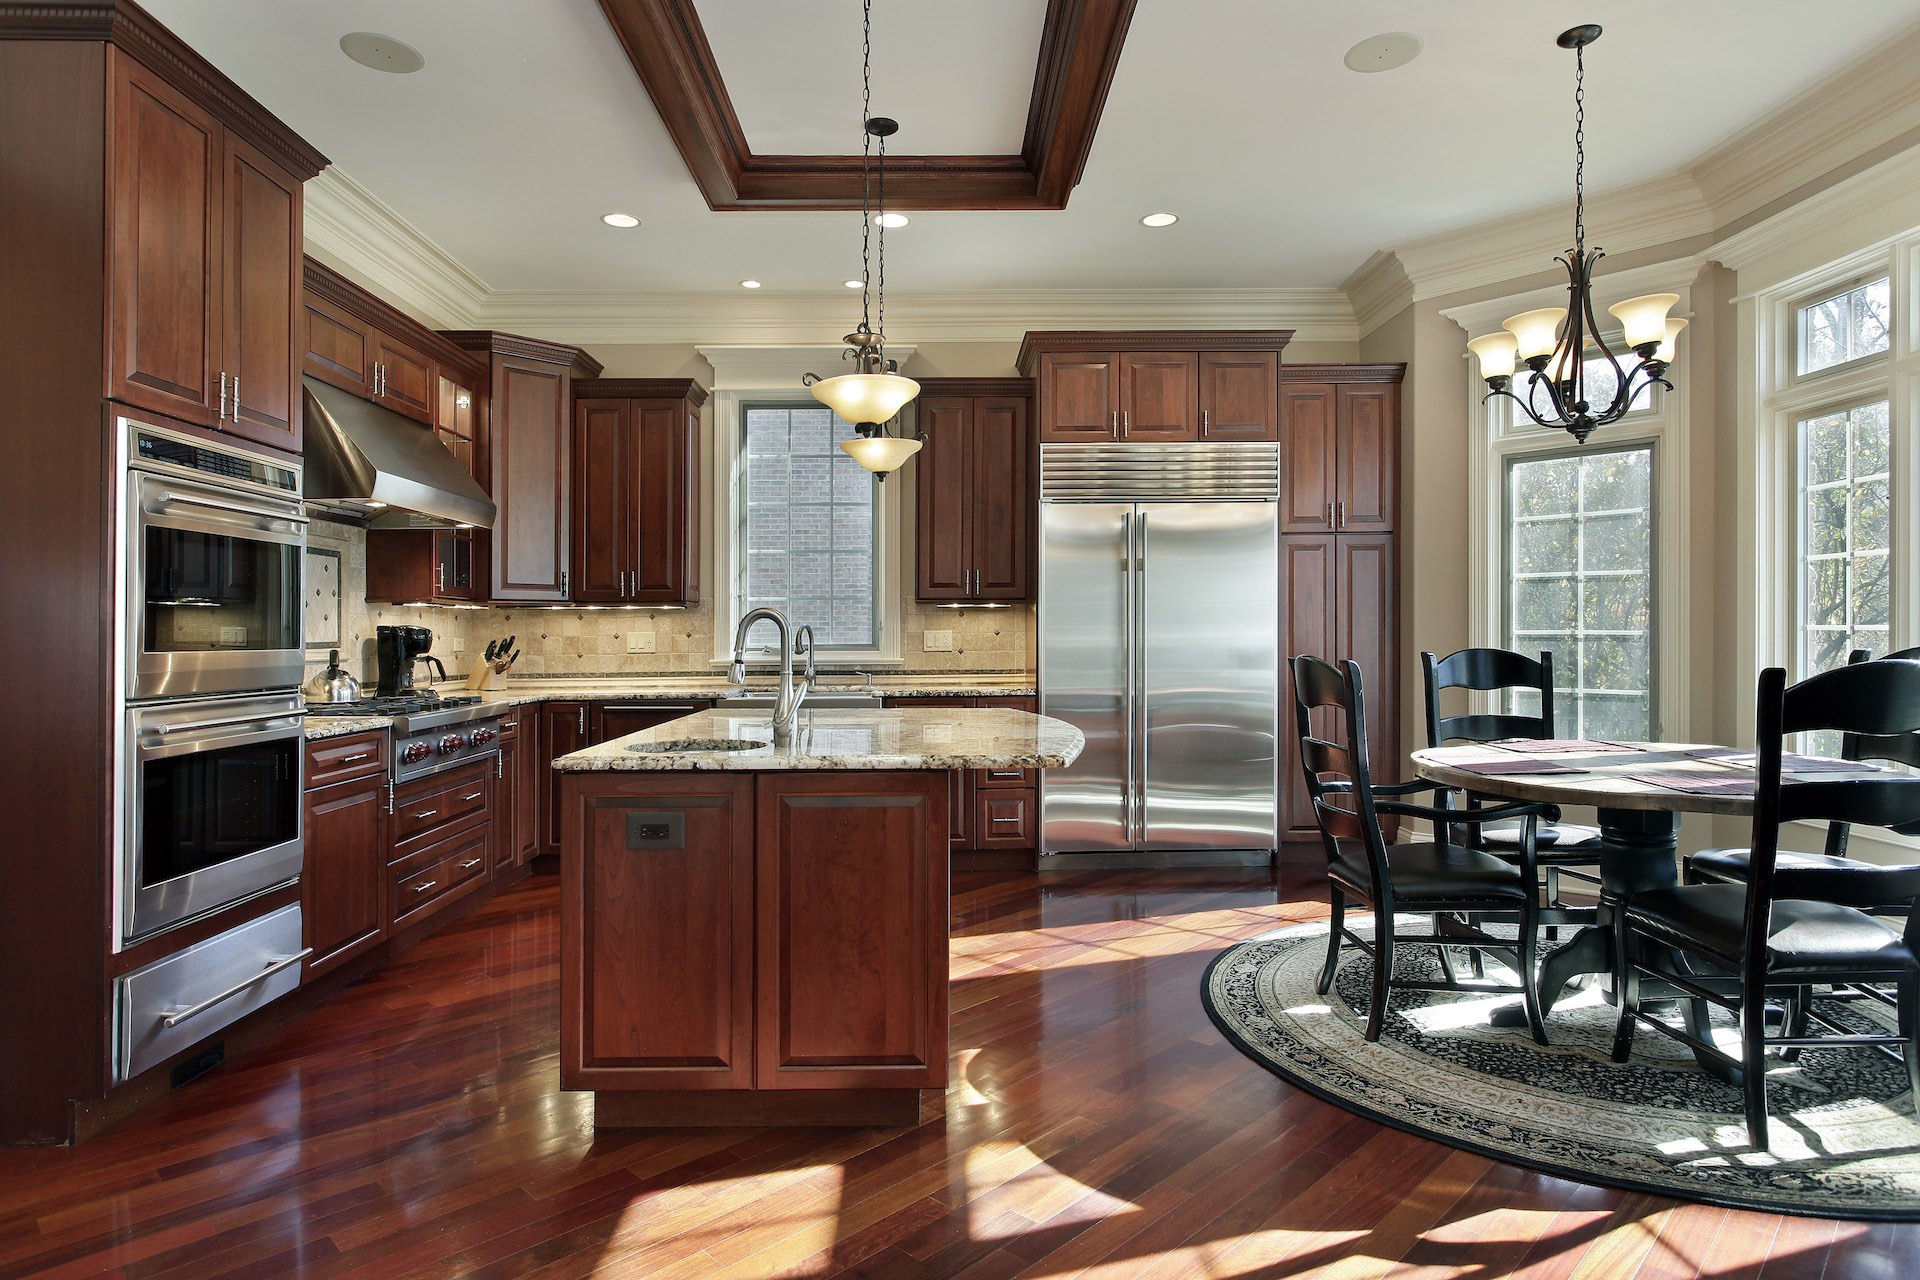 Remodeling Your Kitchen?